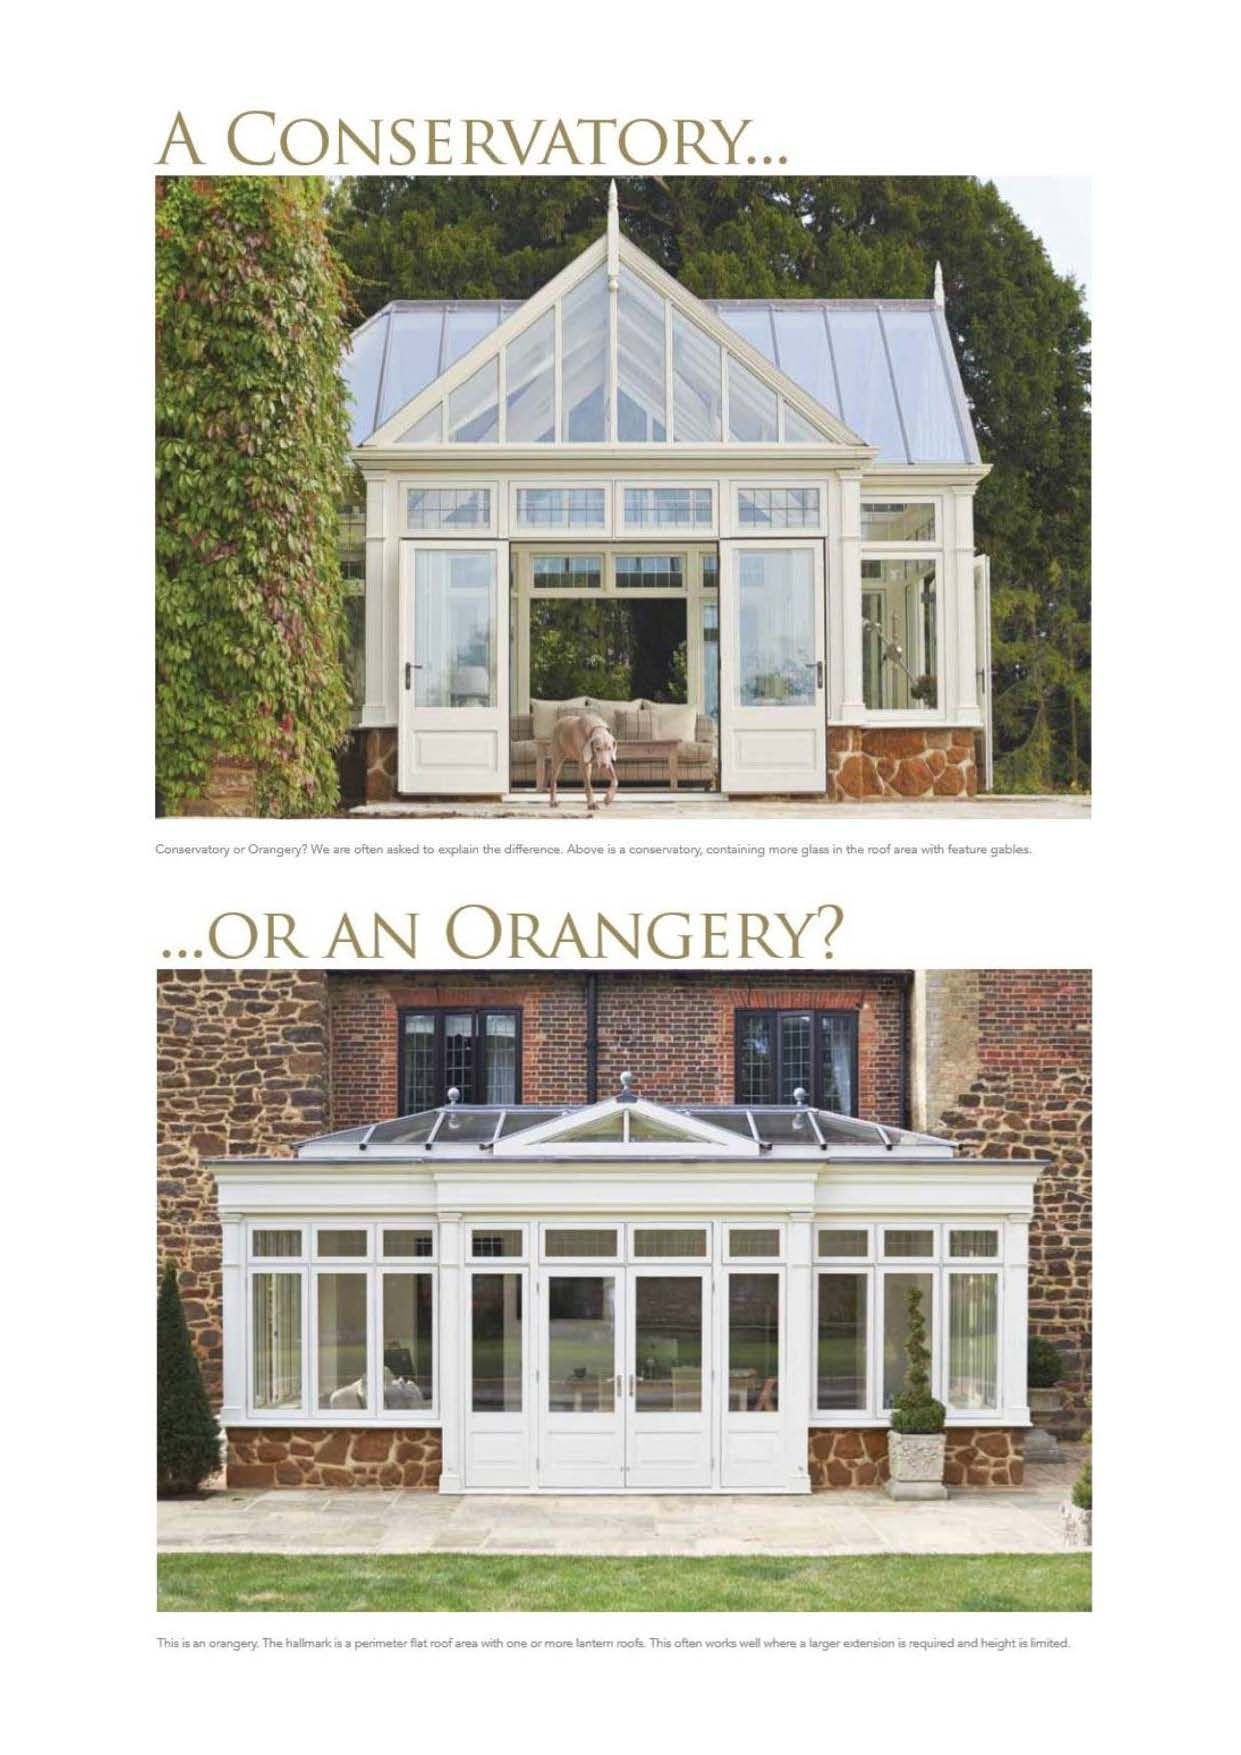 Container Haus Löhne Orangery Or Conservatory We Often Get Asked What The Difference